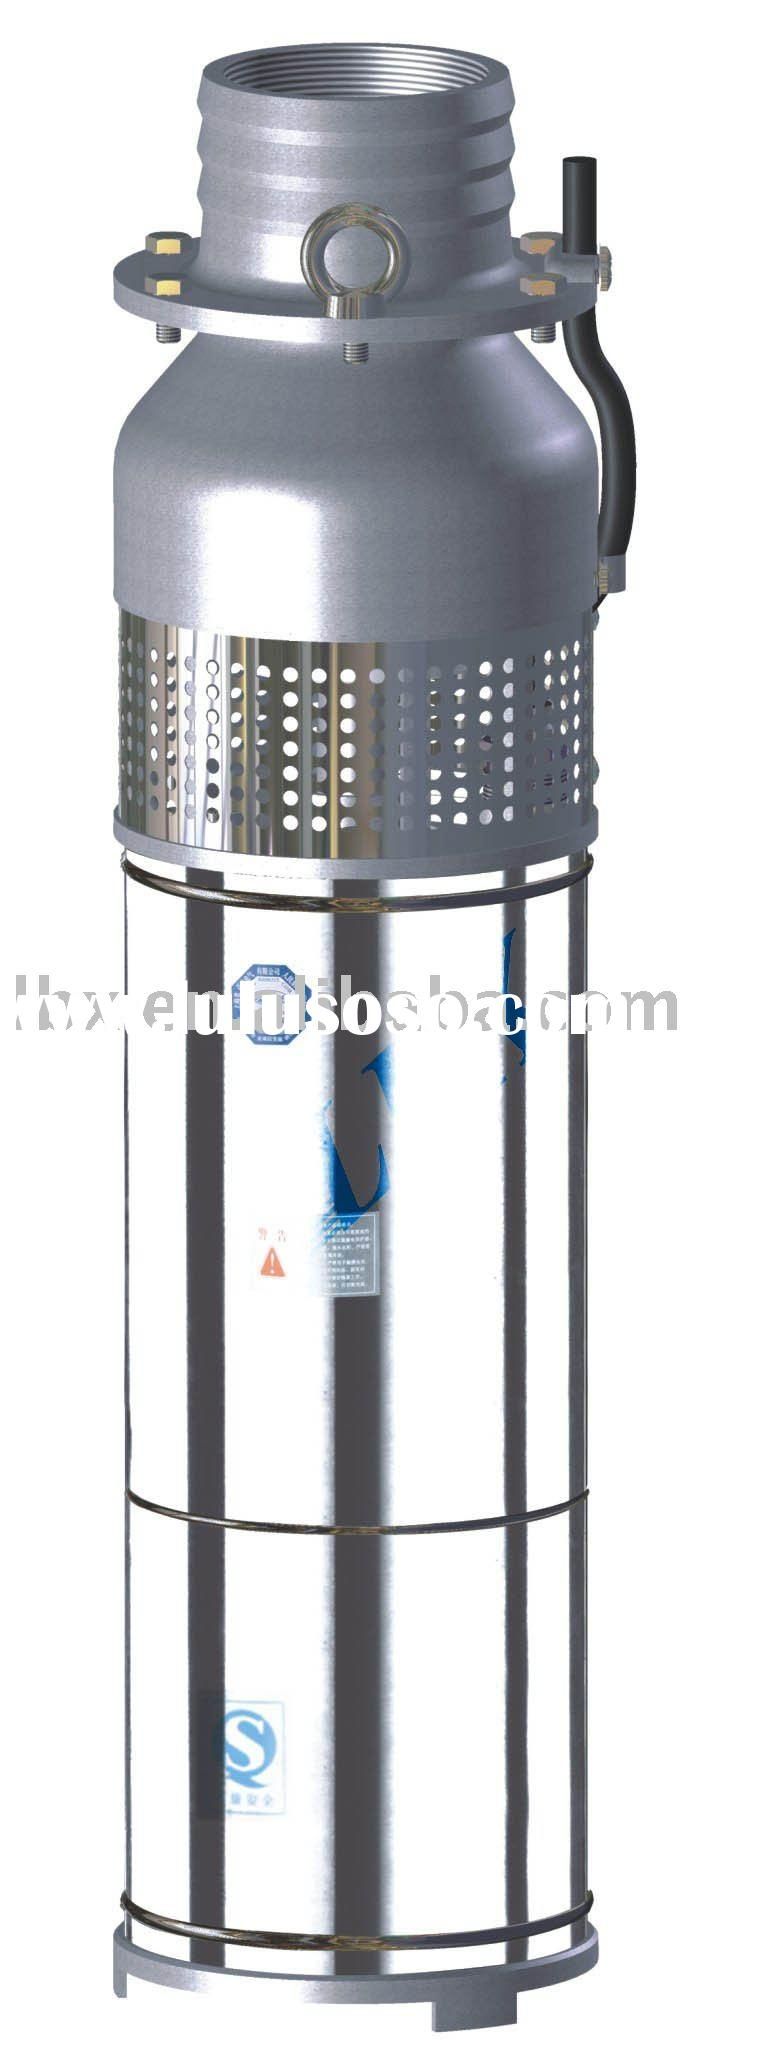 stainless steel oil-filled submersible pump